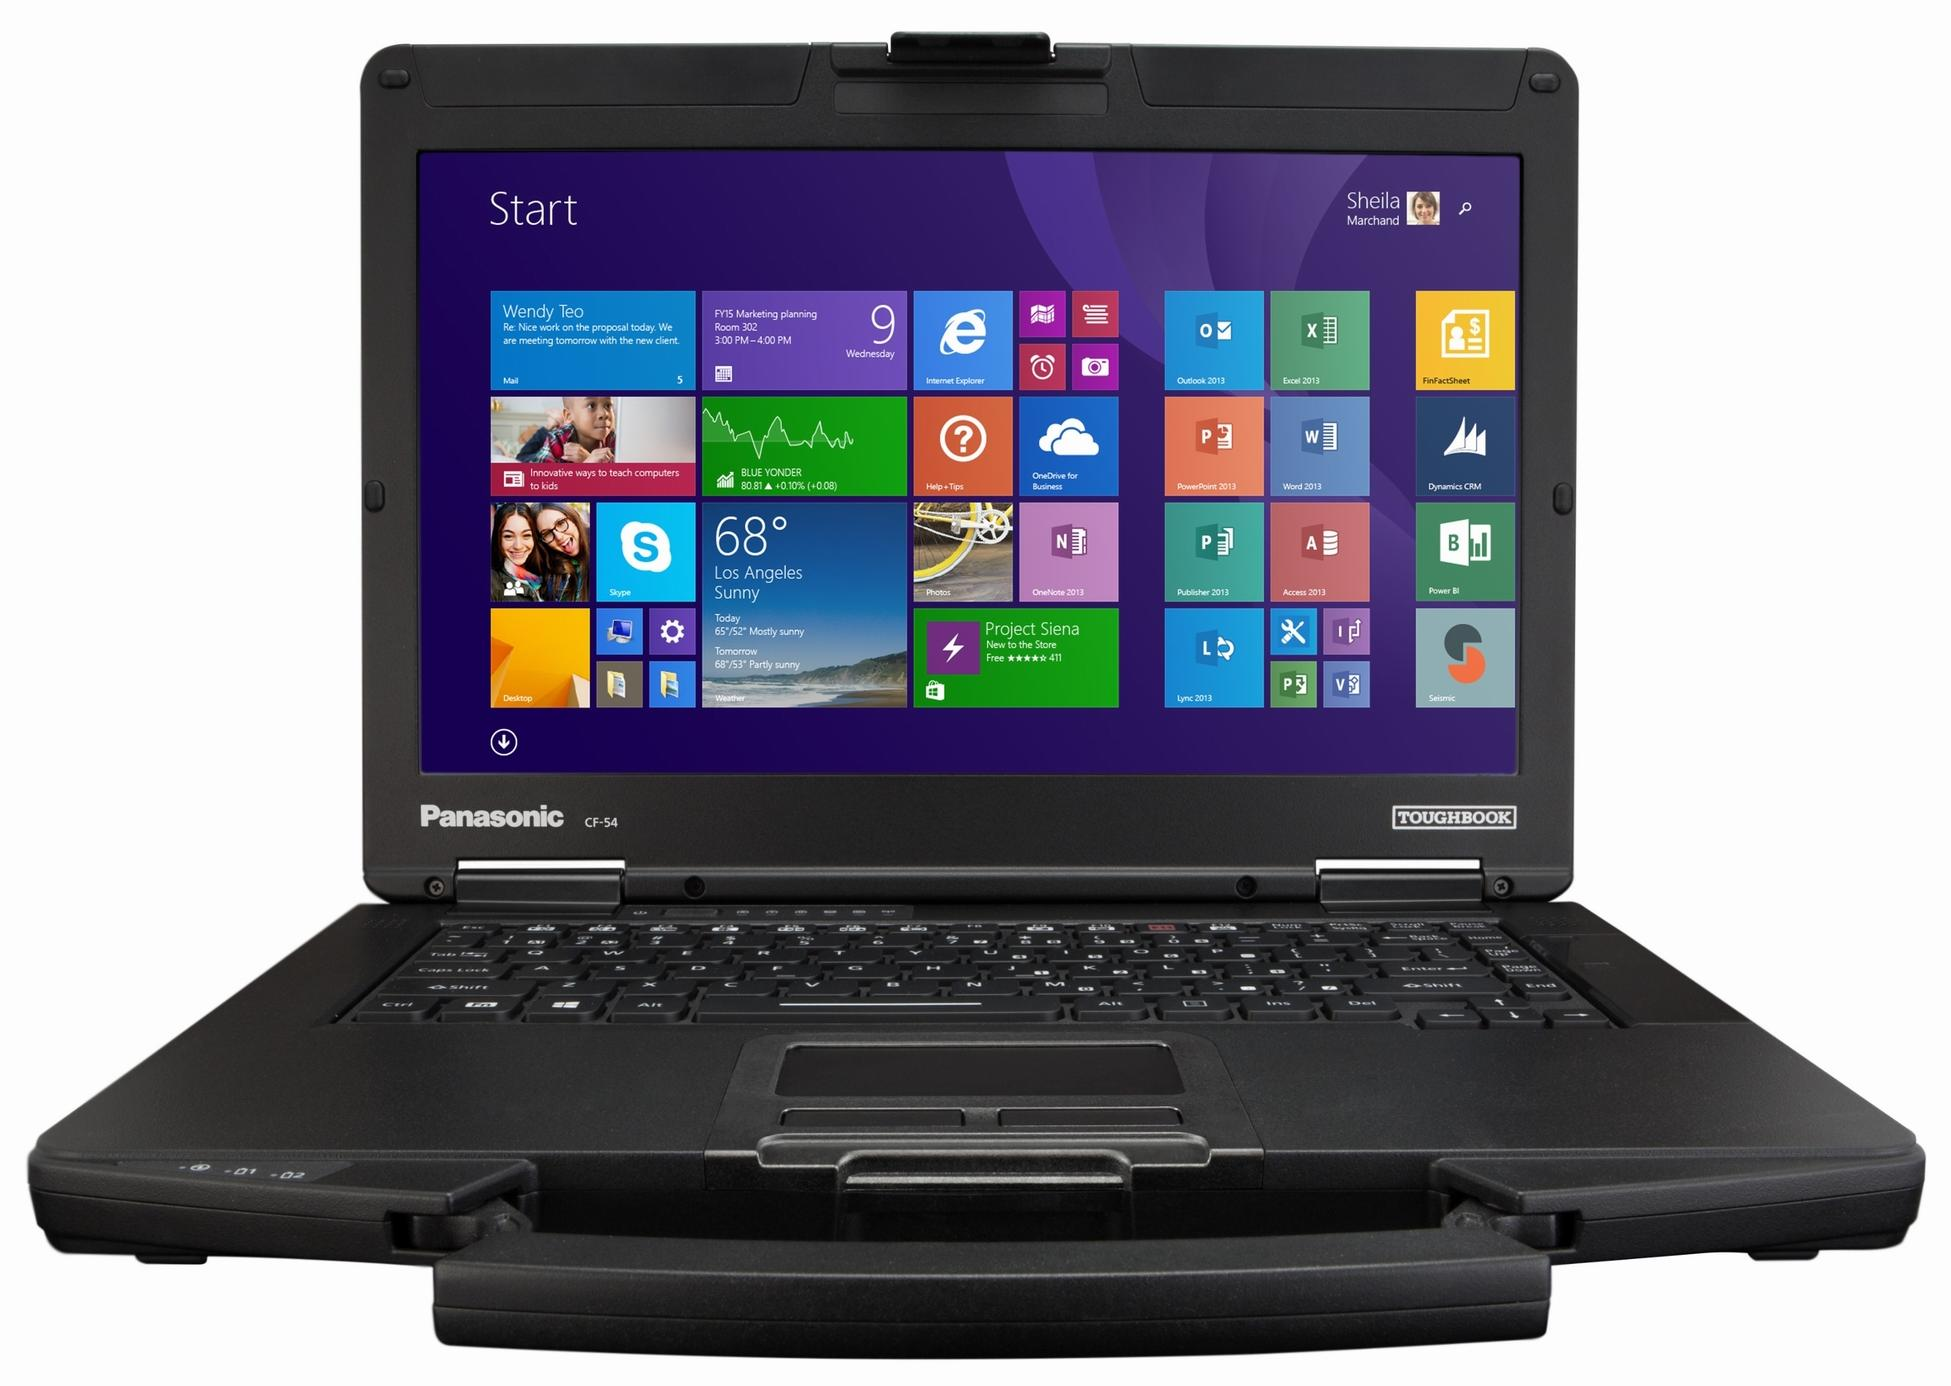 "Защищенный ноутбук Panasonic ToughBook CF-54 14"" Intel Core i5 5300U 2.3Ghz, 4Gb, 500Gb HDD 4G (CF-54AZ003E9)"